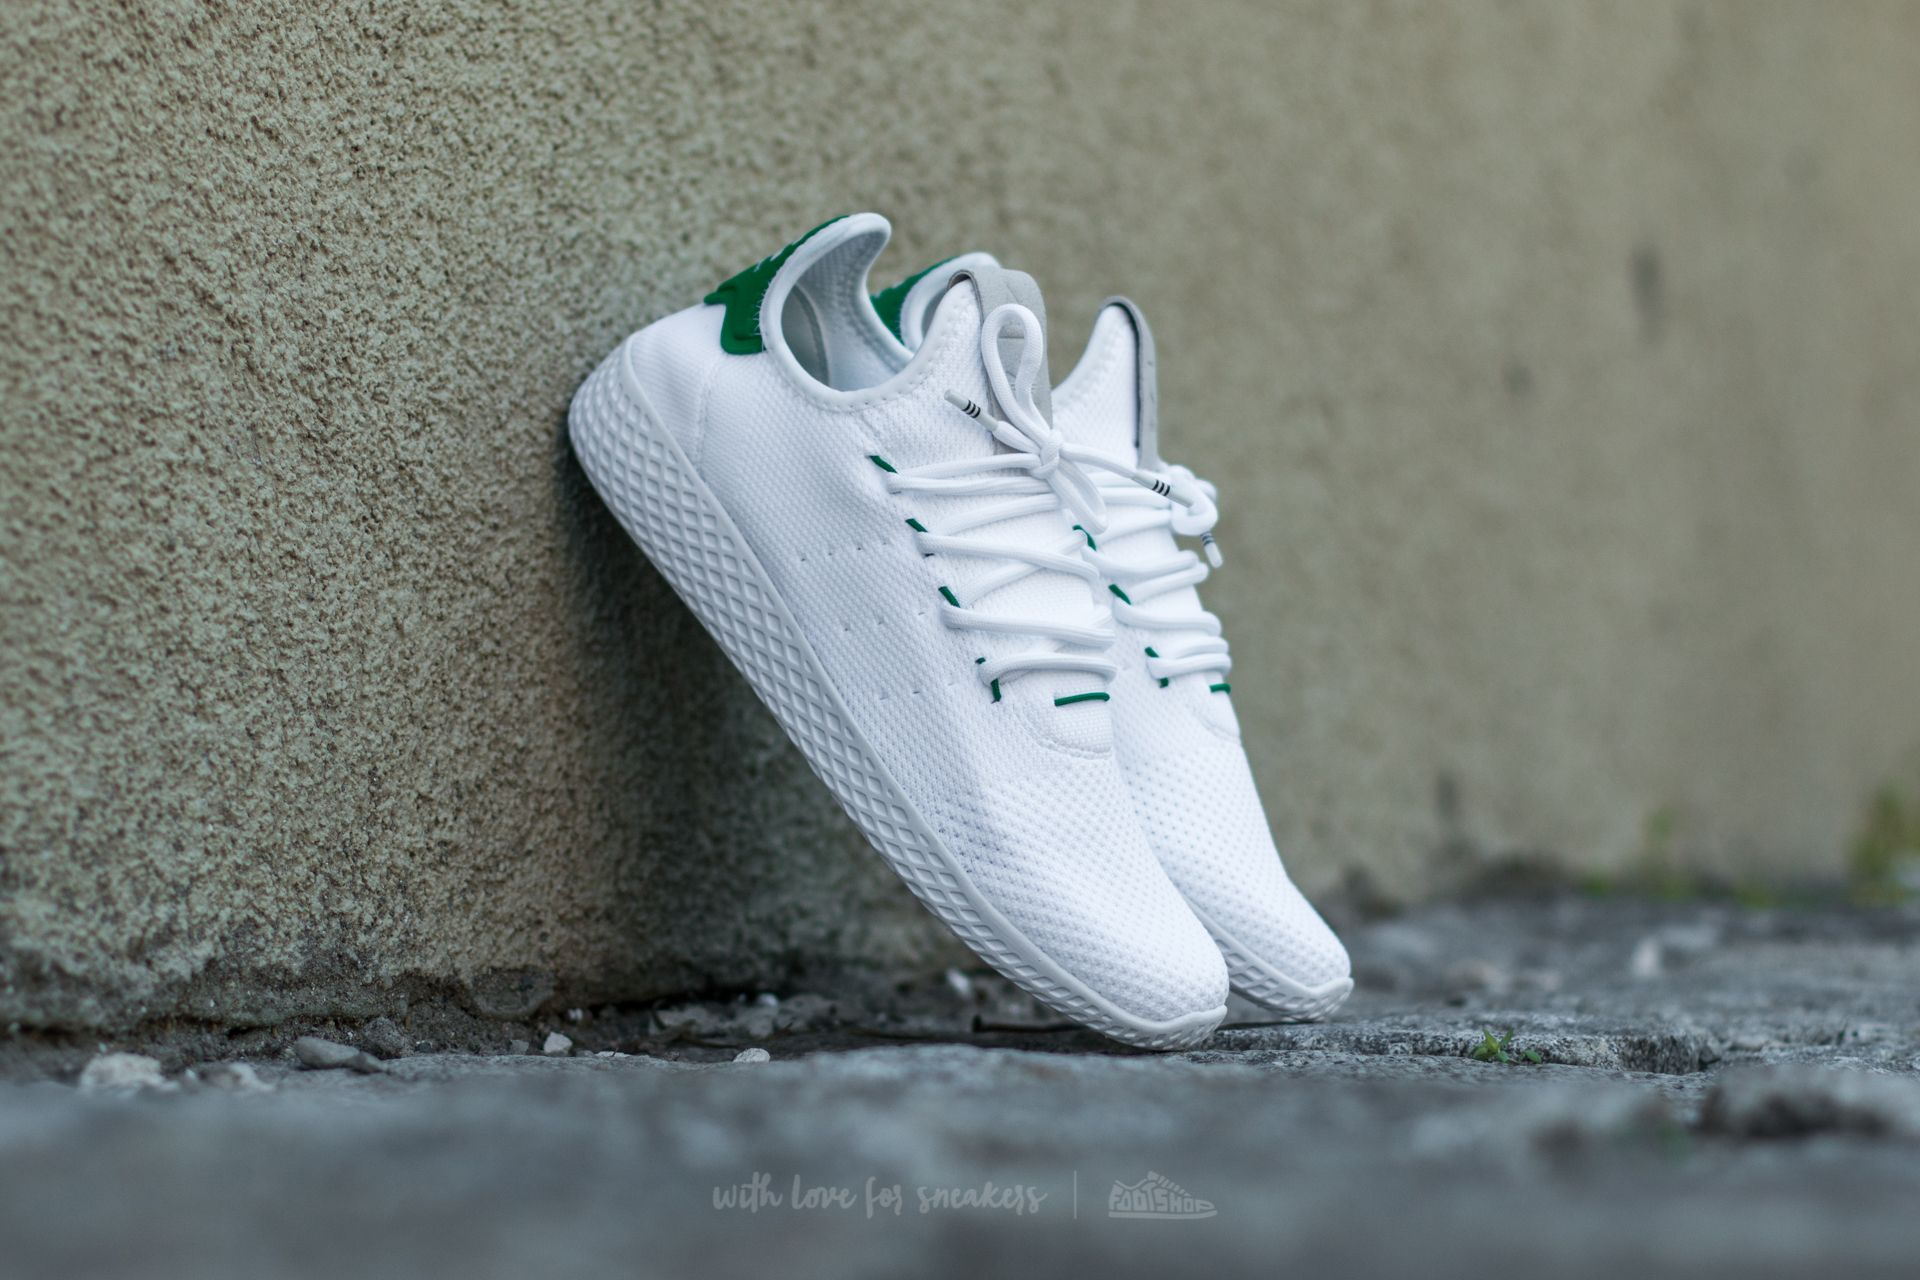 ff435b0cf adidas x Pharrell Williams Tennis HU Ftw White  Ftw White  Green ...